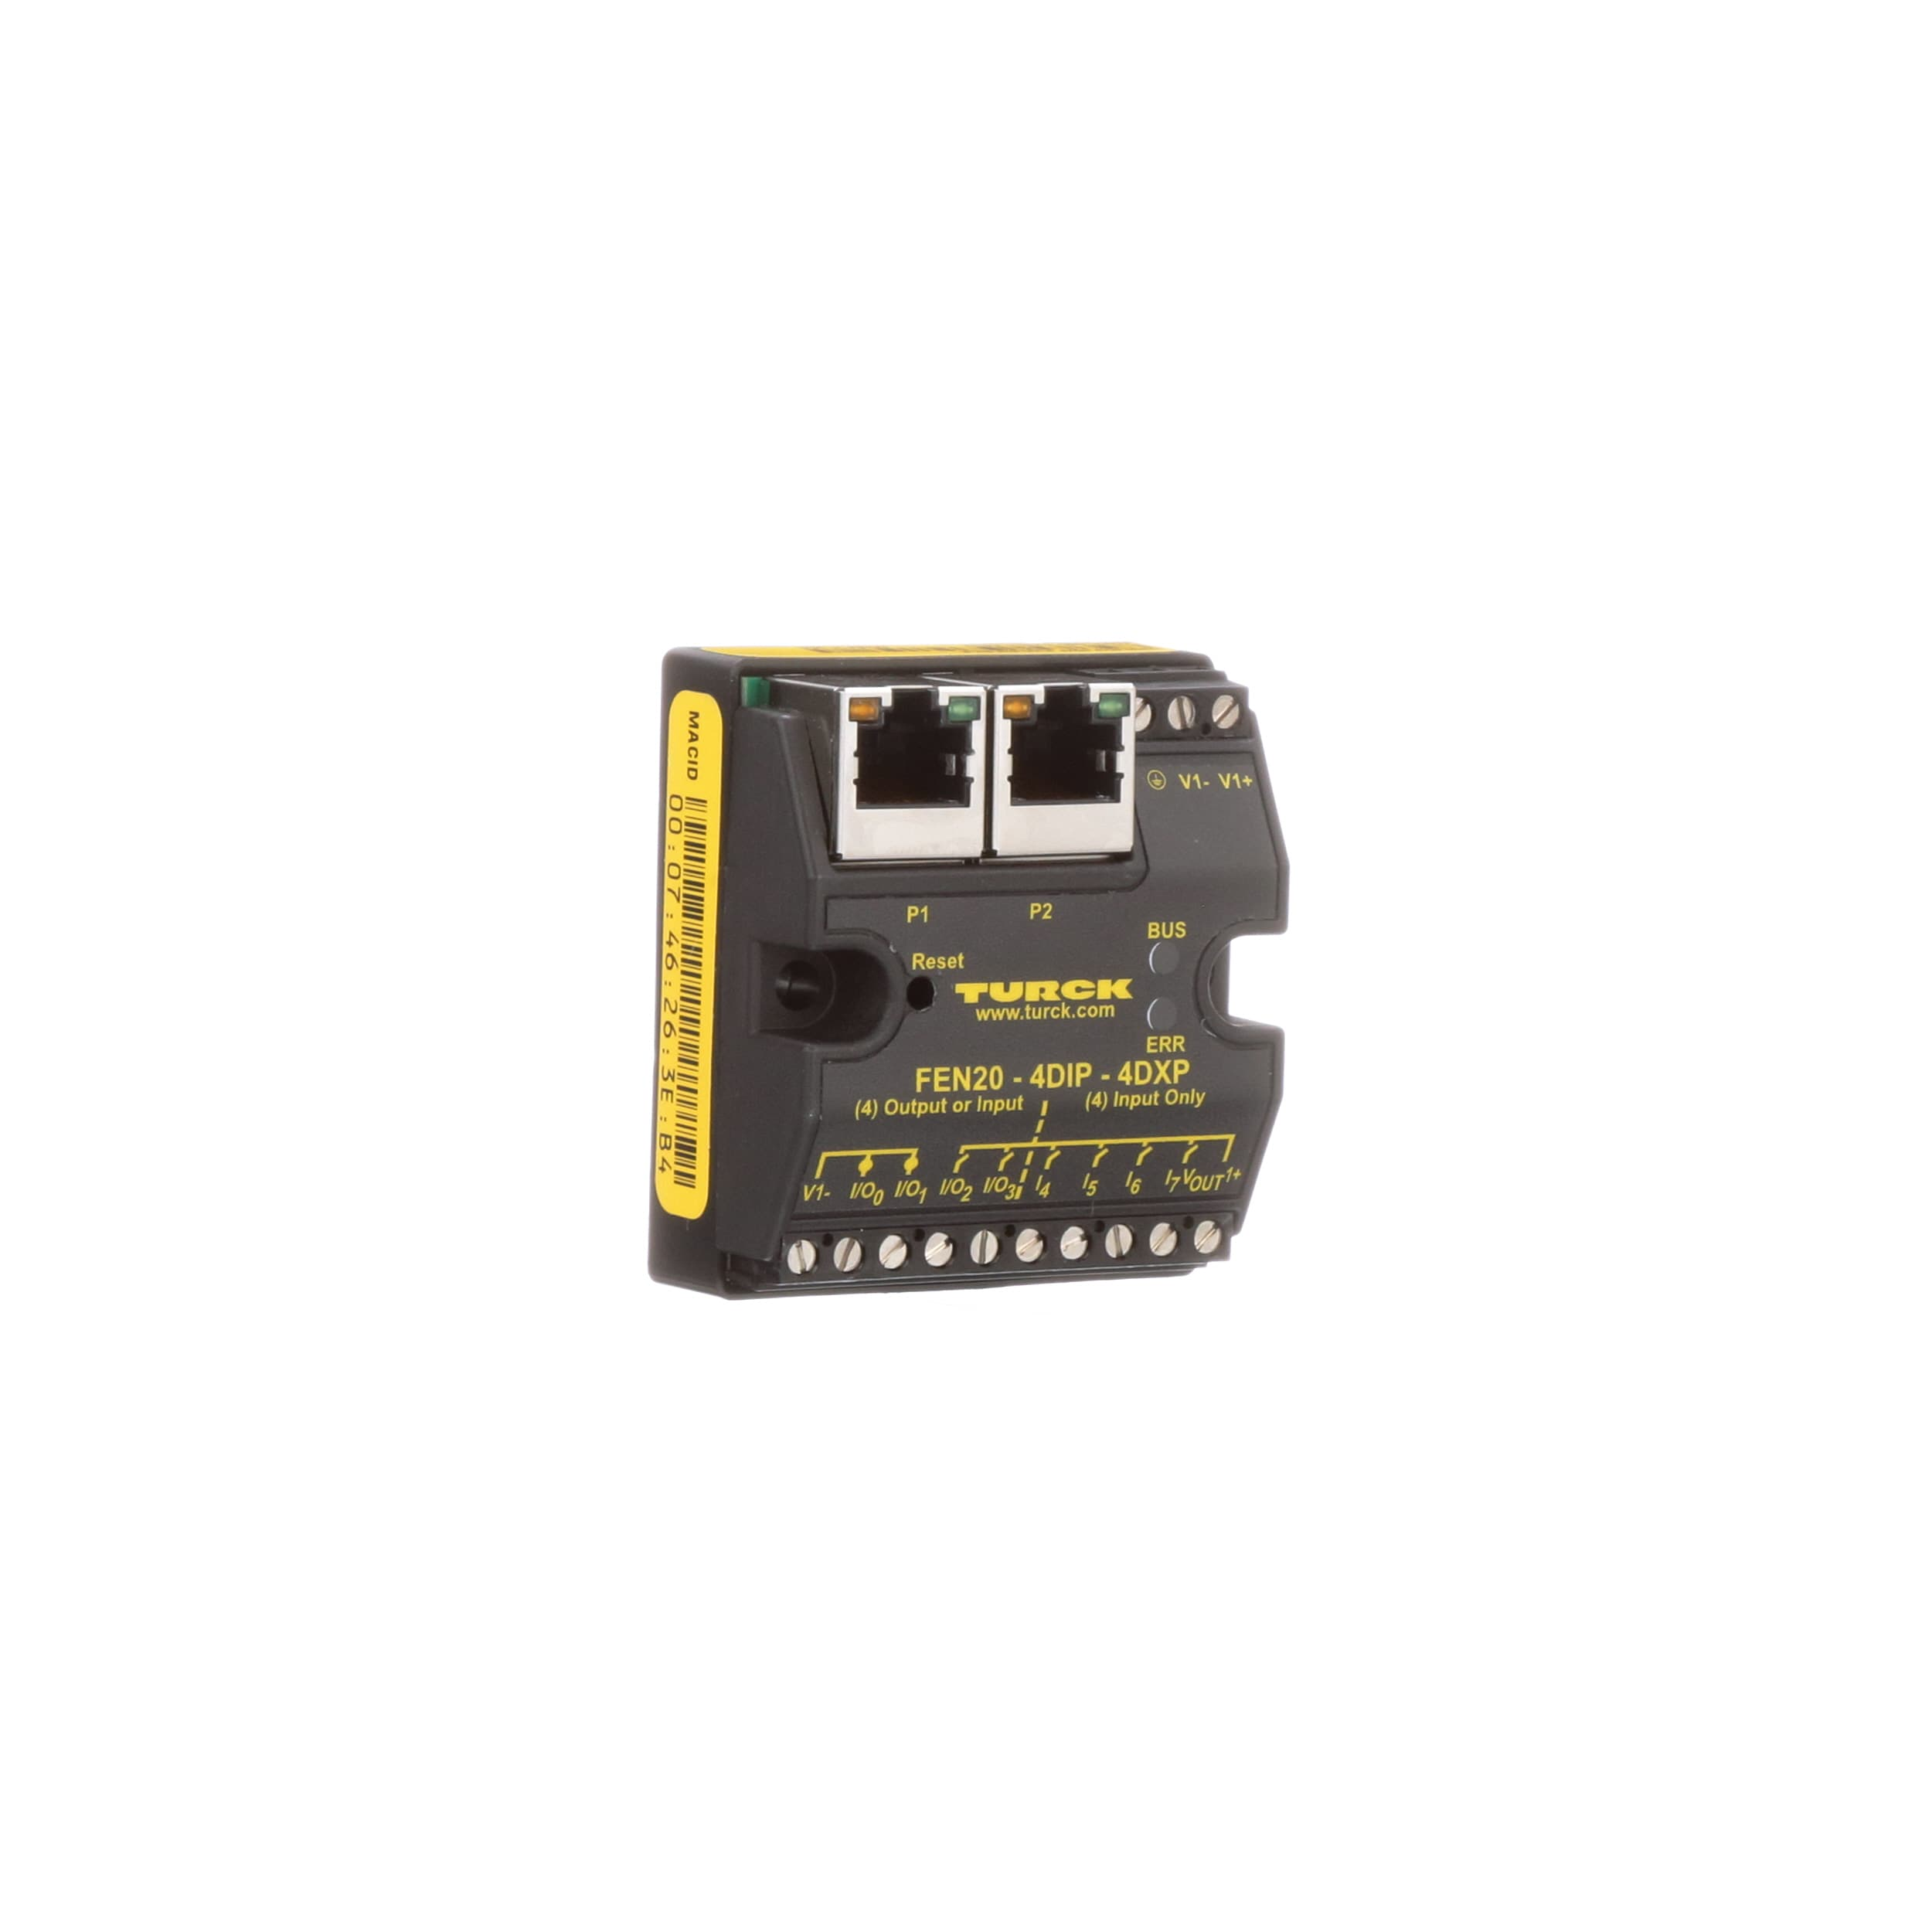 TURCK - FEN20-4DIP-4DXP - Multiprotocol block I/O modules, 4 PNP In, 4 in  or out, 24VDC, FEN20 Series - Allied Electronics & Automation | Turck I O Block Wiring Diagram |  | Allied Electronics